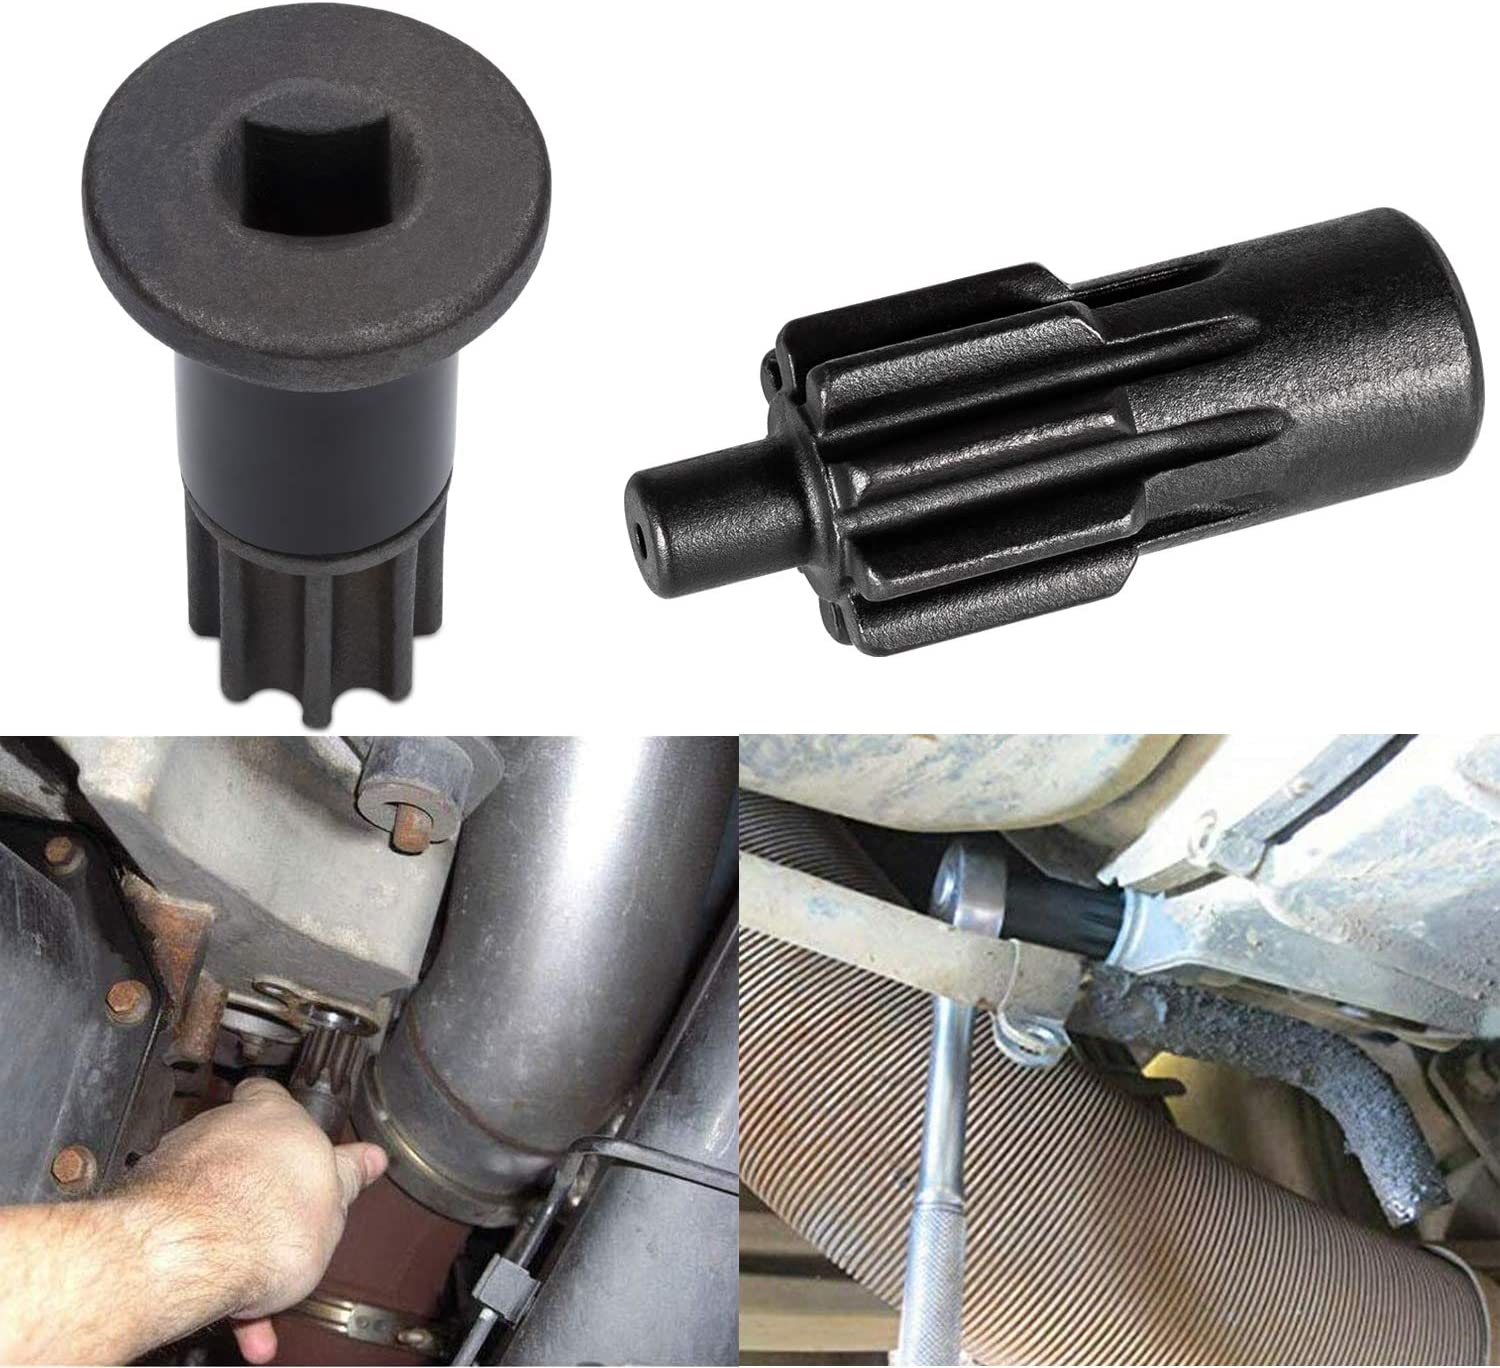 Engine Barring Tool for Paccar MX 13 for Peterbilt and Kenworth T880 Truck /& Engine Barring//Rotating Tool for Cummins B//C Series and Dodge Pickups 3.9L 5.9L 6.7L /& 8.3L Diesels Engines